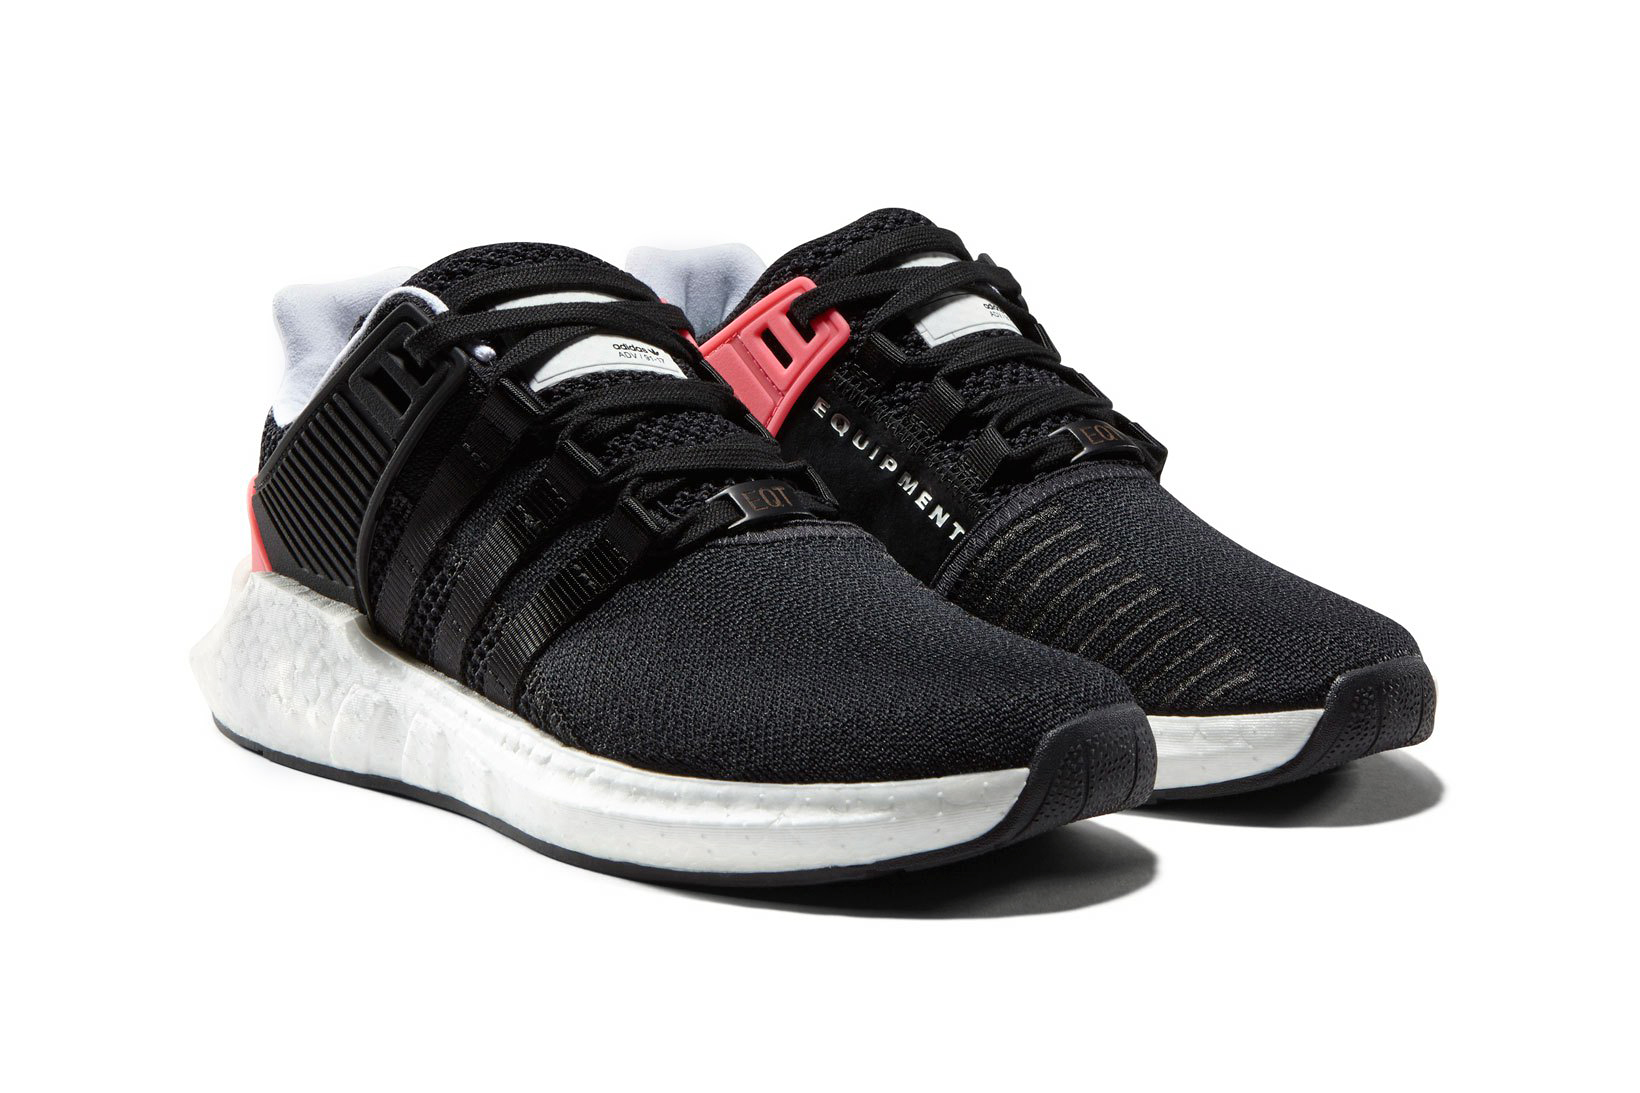 adidas originals eqt support 93 17 exclusive first look. Black Bedroom Furniture Sets. Home Design Ideas